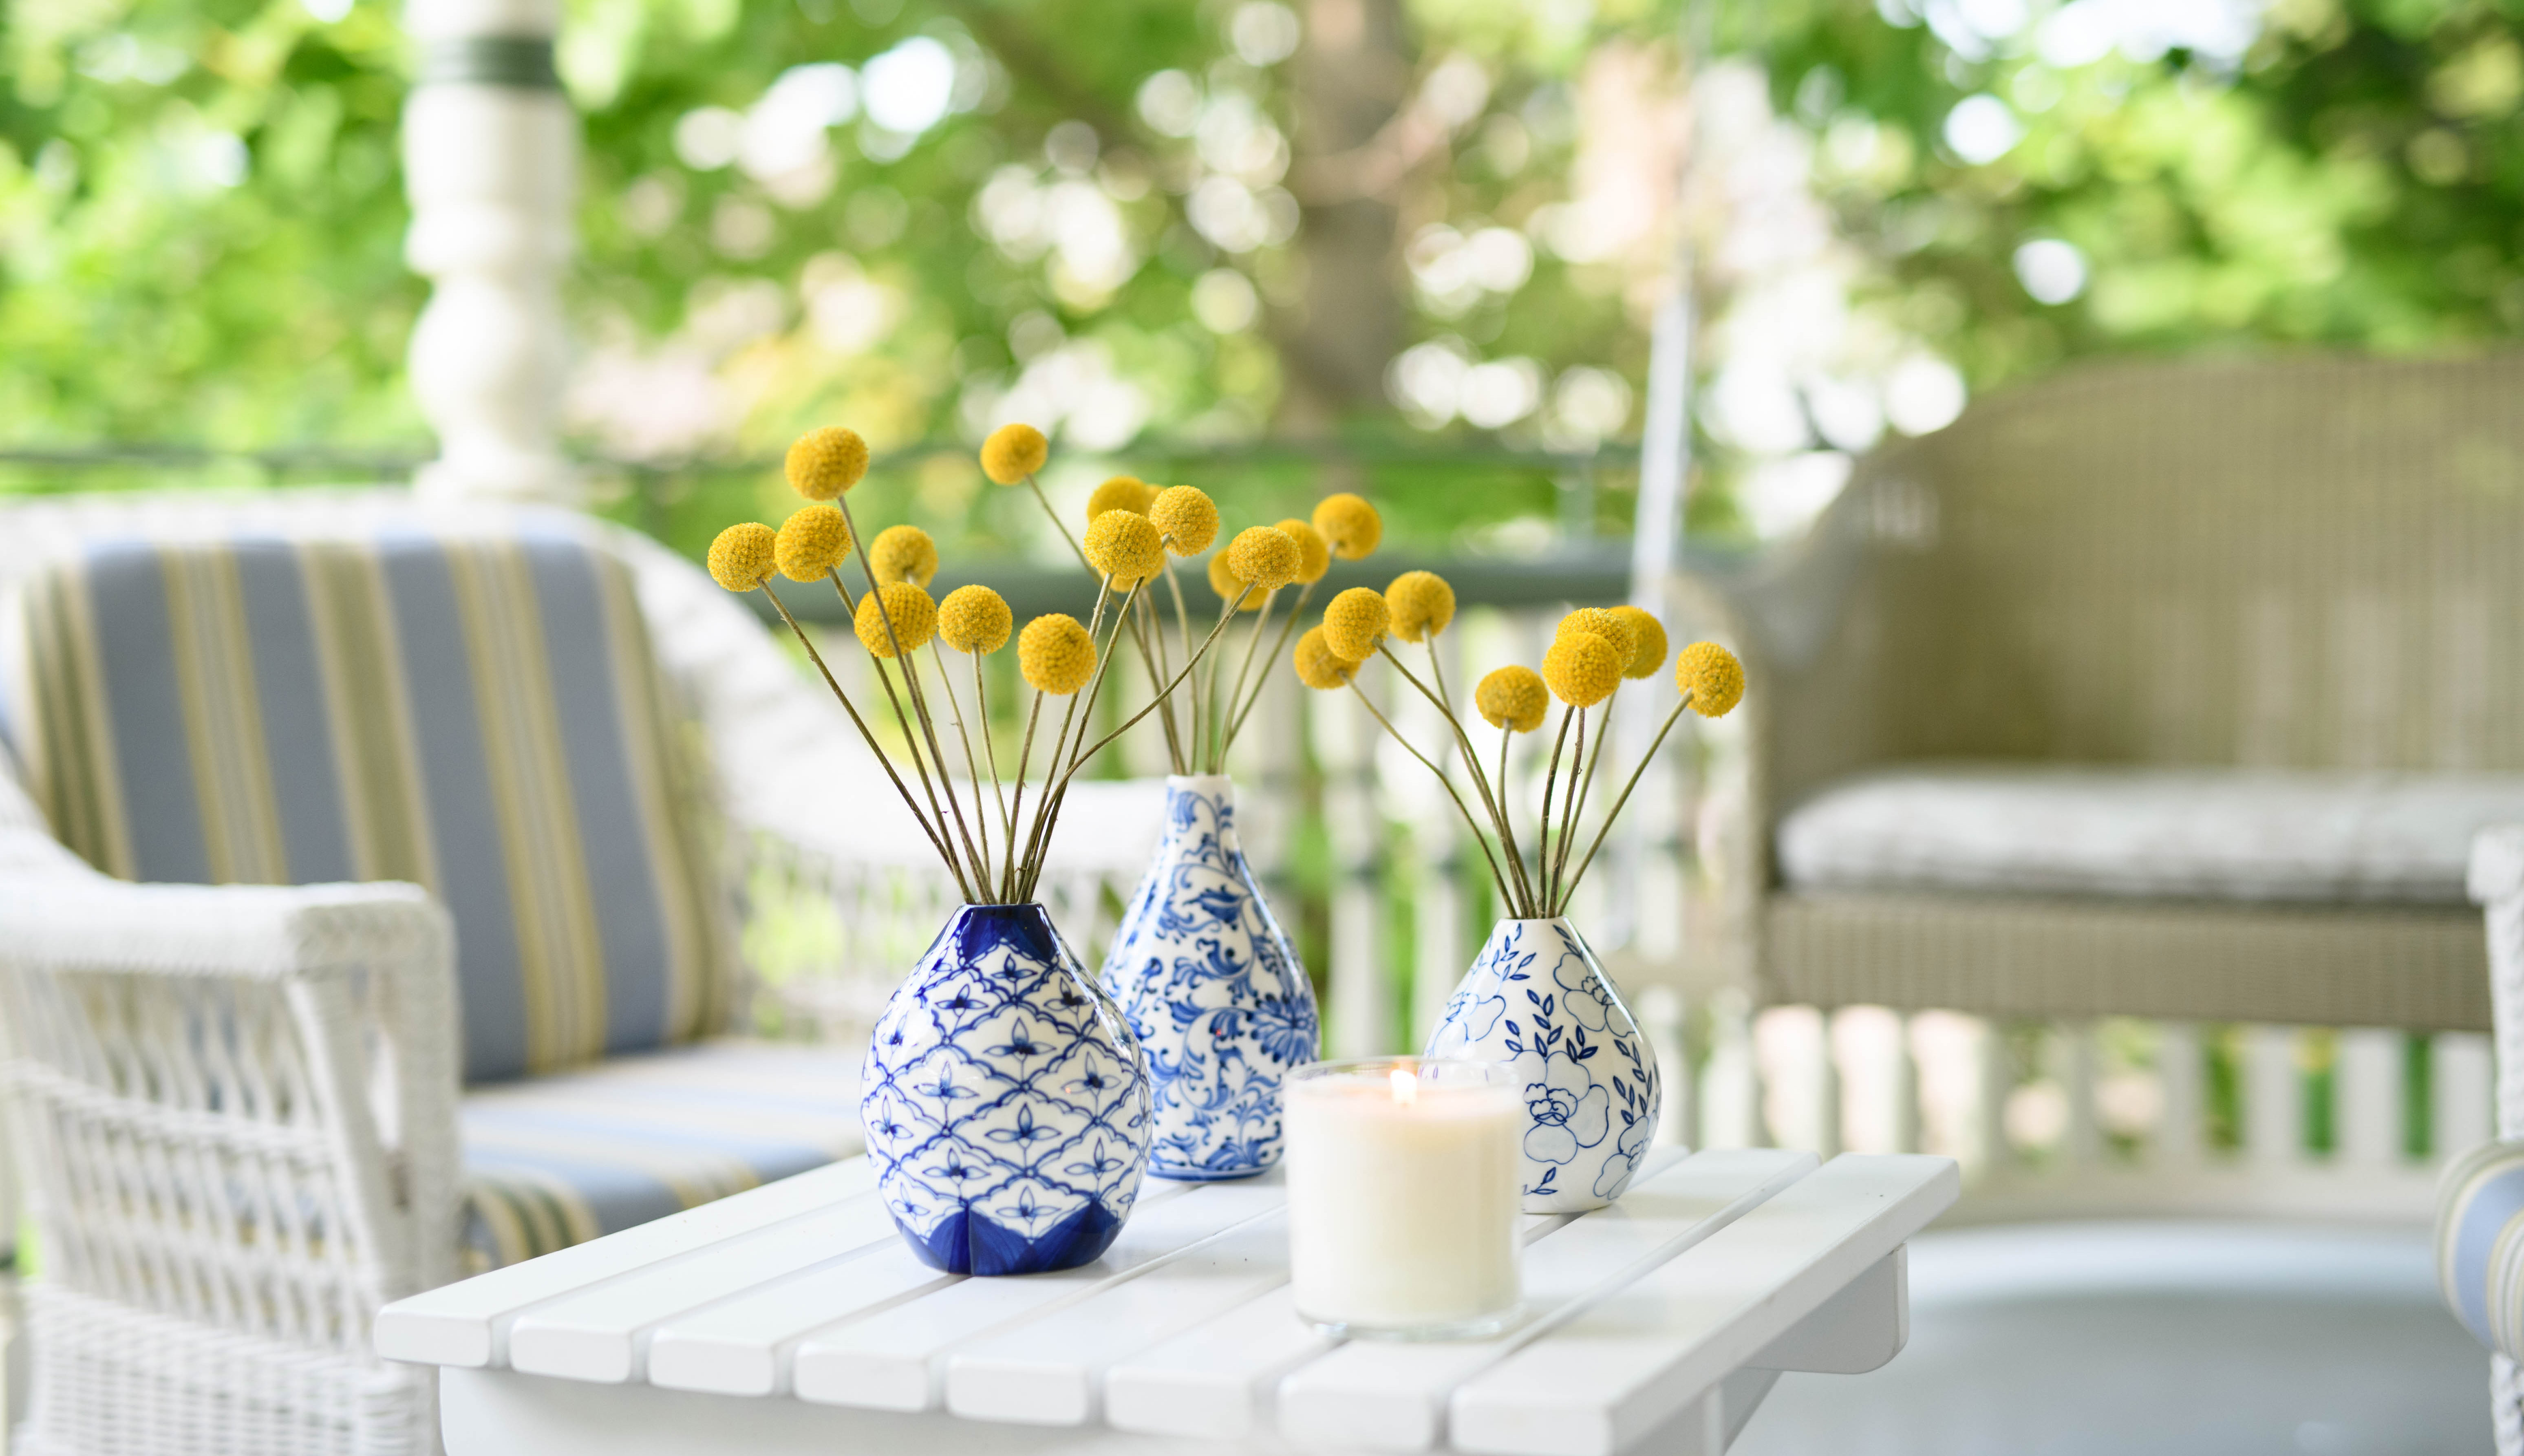 Three blue and white ceramic vases with yellow flowers on an outdoor patio